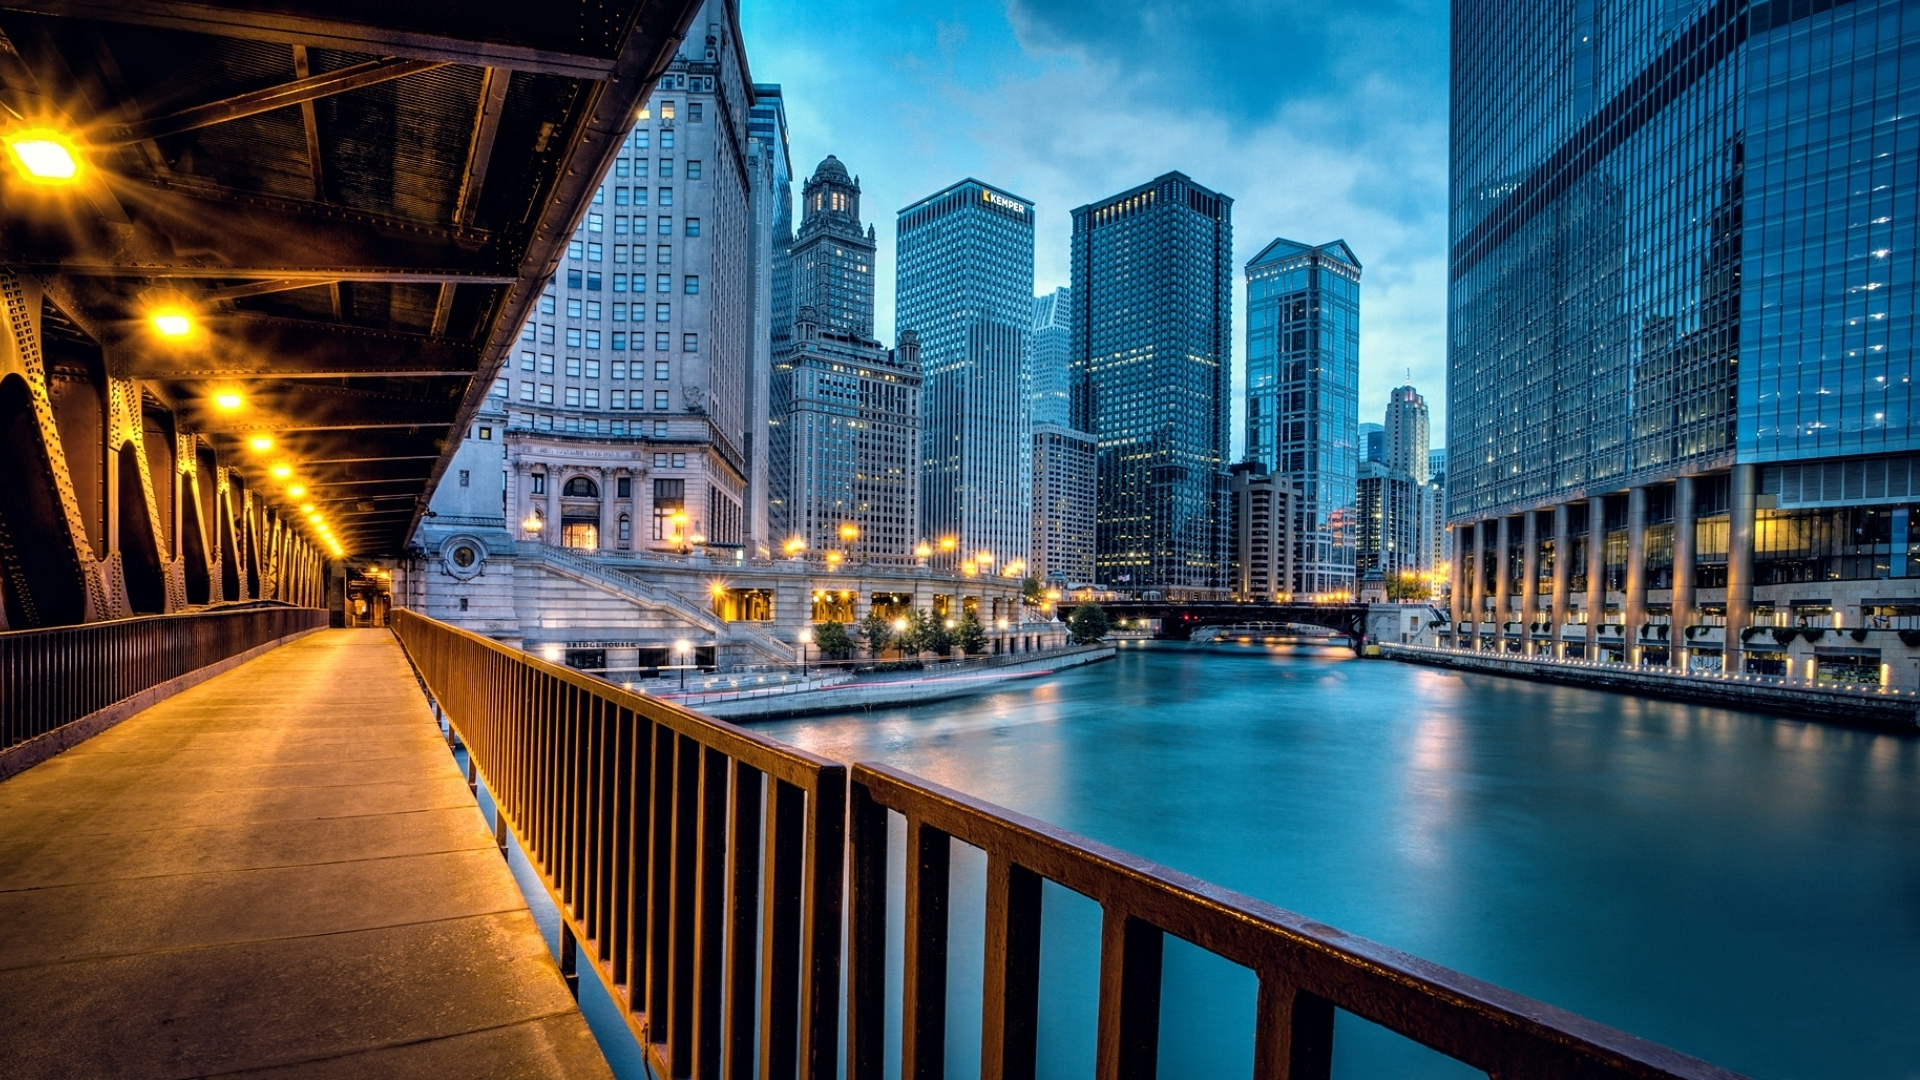 chicago_llinois_illinois_usa_united_states_city_evening_river_houses_buildings_skyscrapers_road_lighting_lights_bridge_83634_1920x1080.jpg